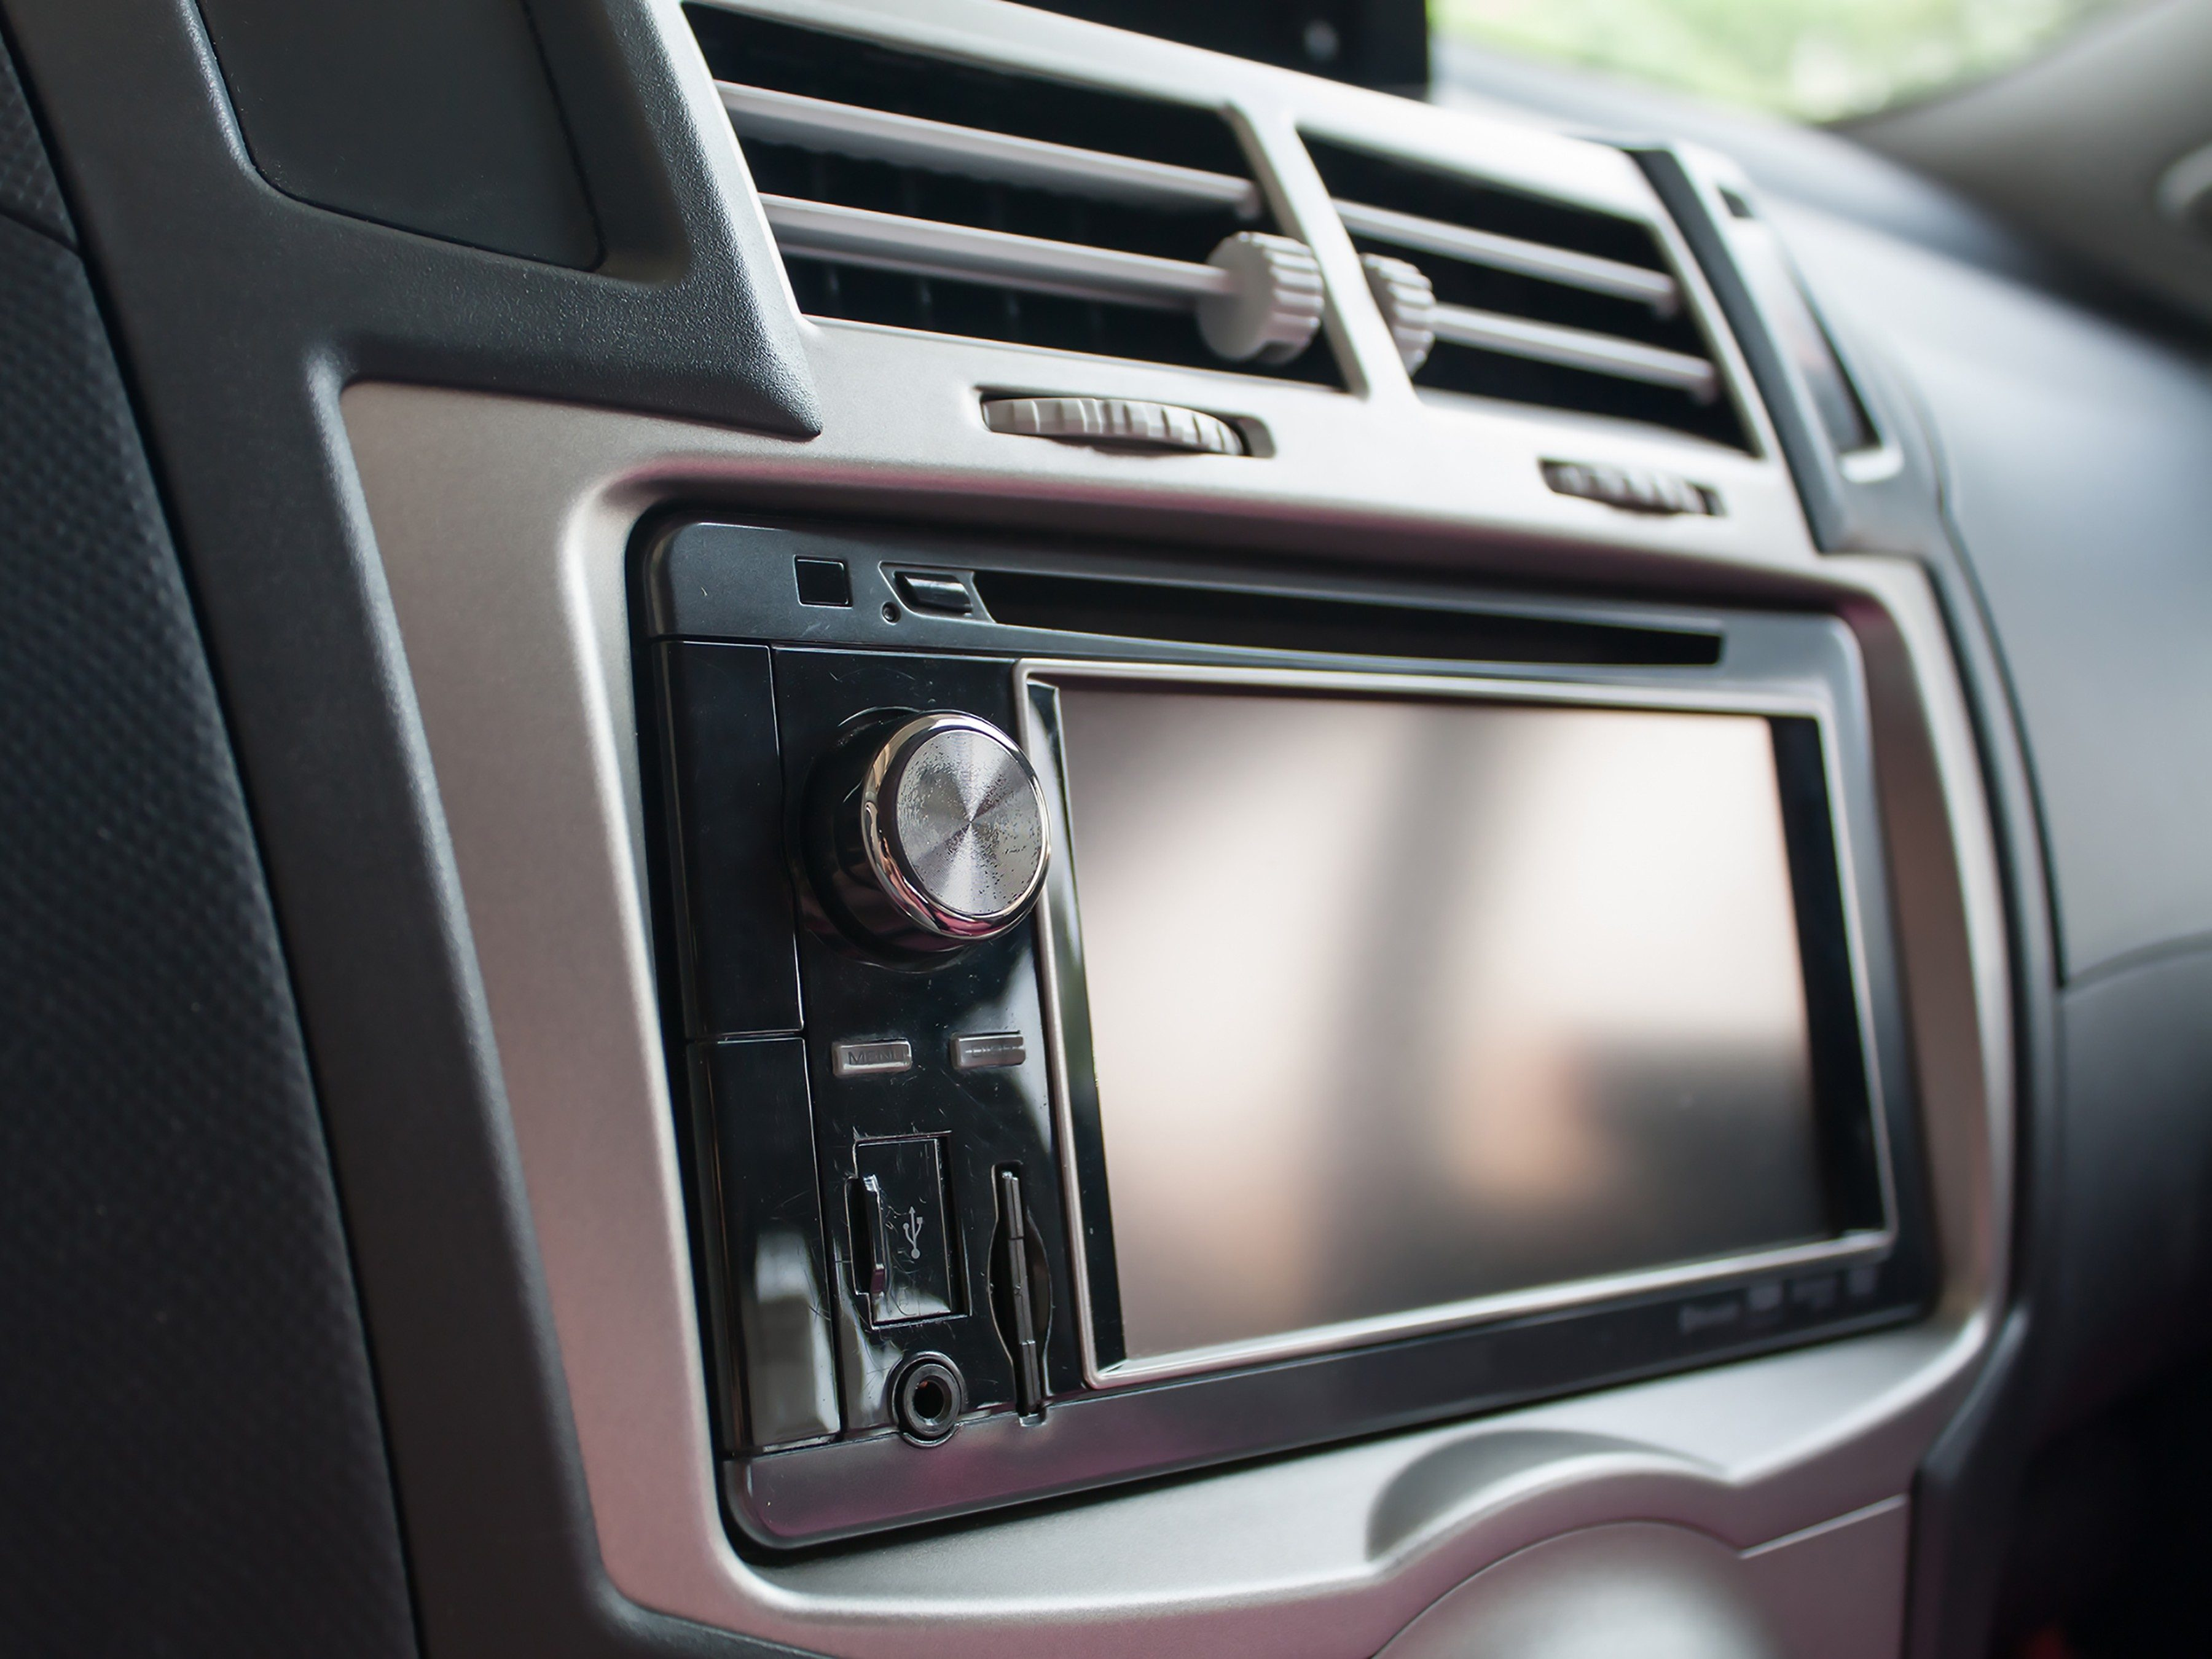 2. Double DIN Car Stereo Systems